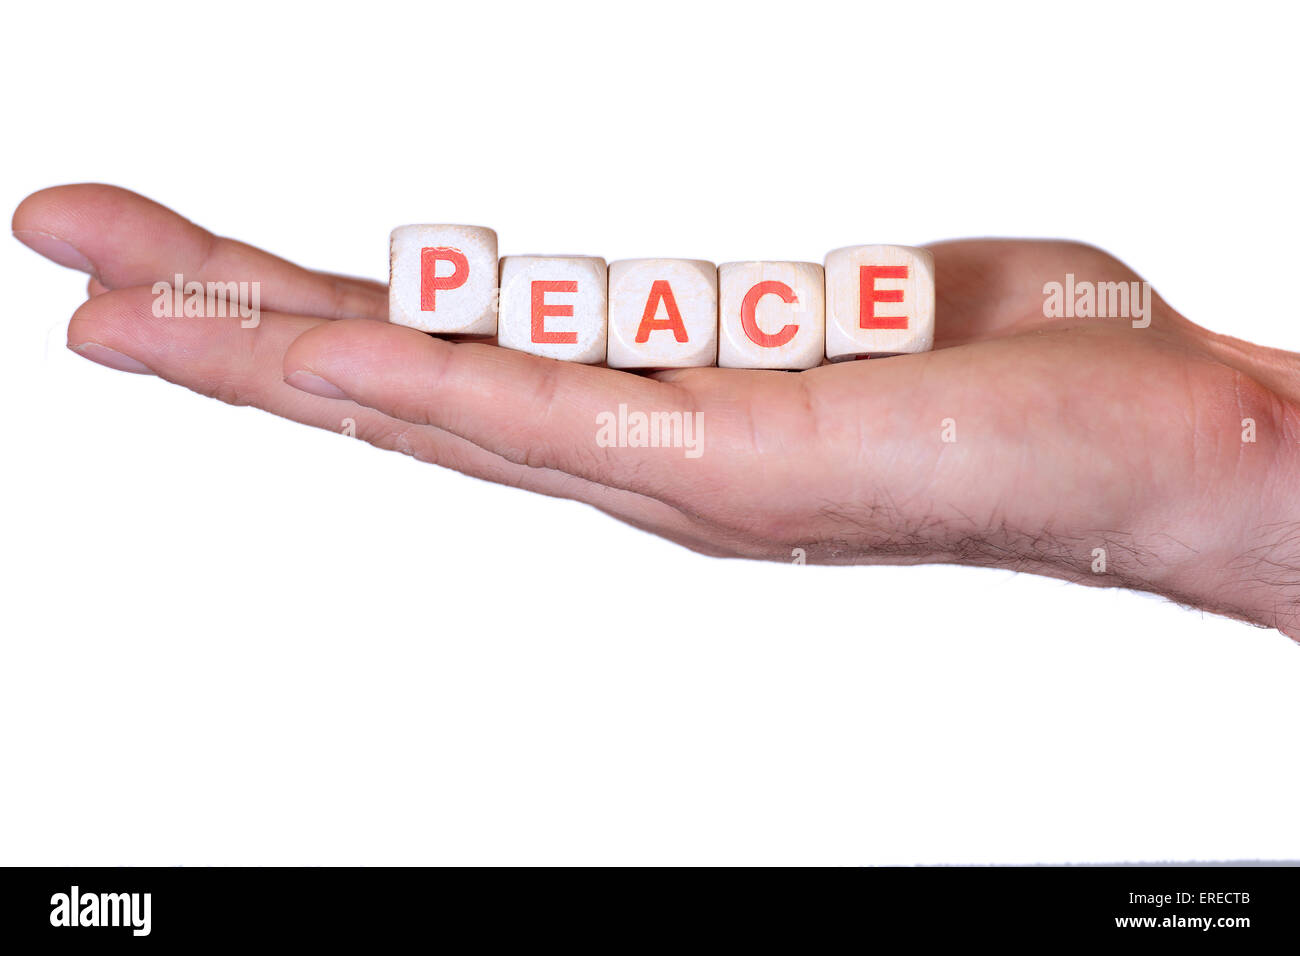 The word peace written with wooden dice on the he palm of the hand. Isolated on white background - Stock Image